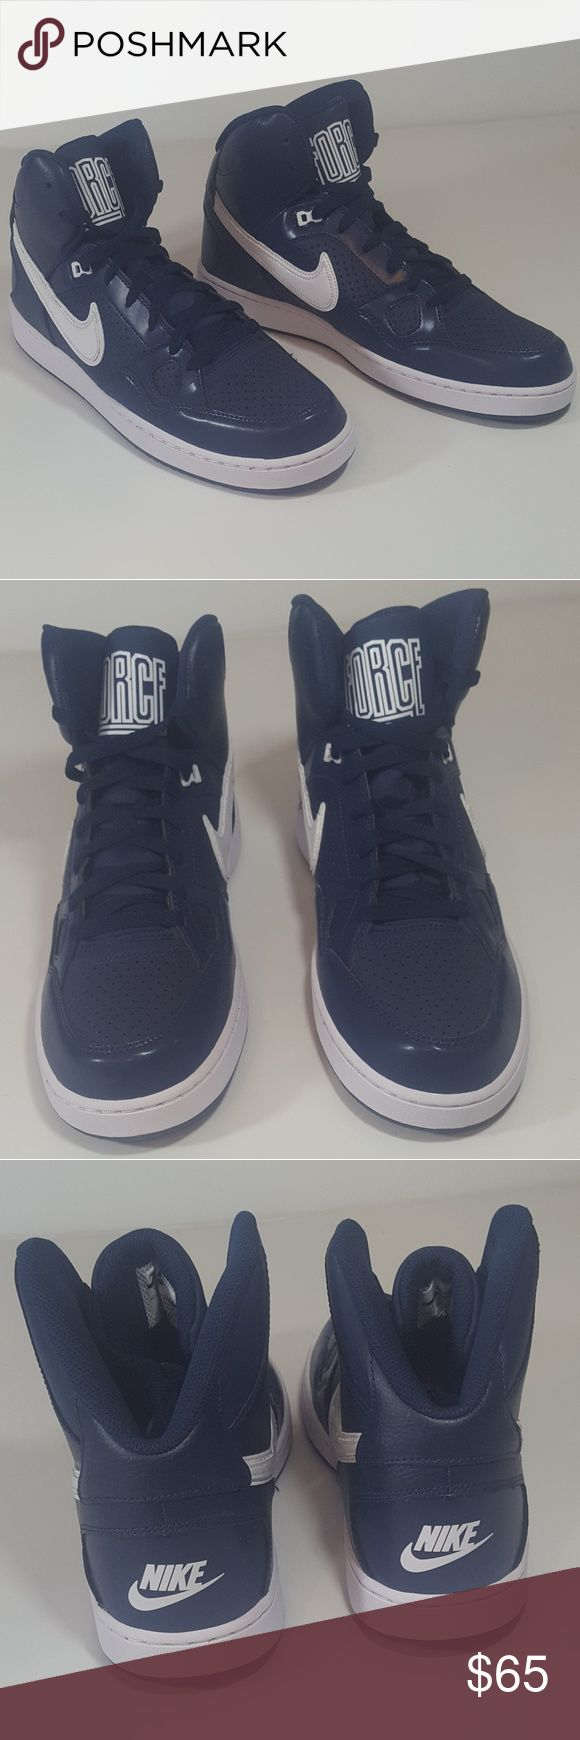 Nike Son Of Force size (11) Mid Top Sneakers Nike Son Of Force size (11) Mid Top Sneakers BRAND NEW! Nike Shoes Athletic Shoes